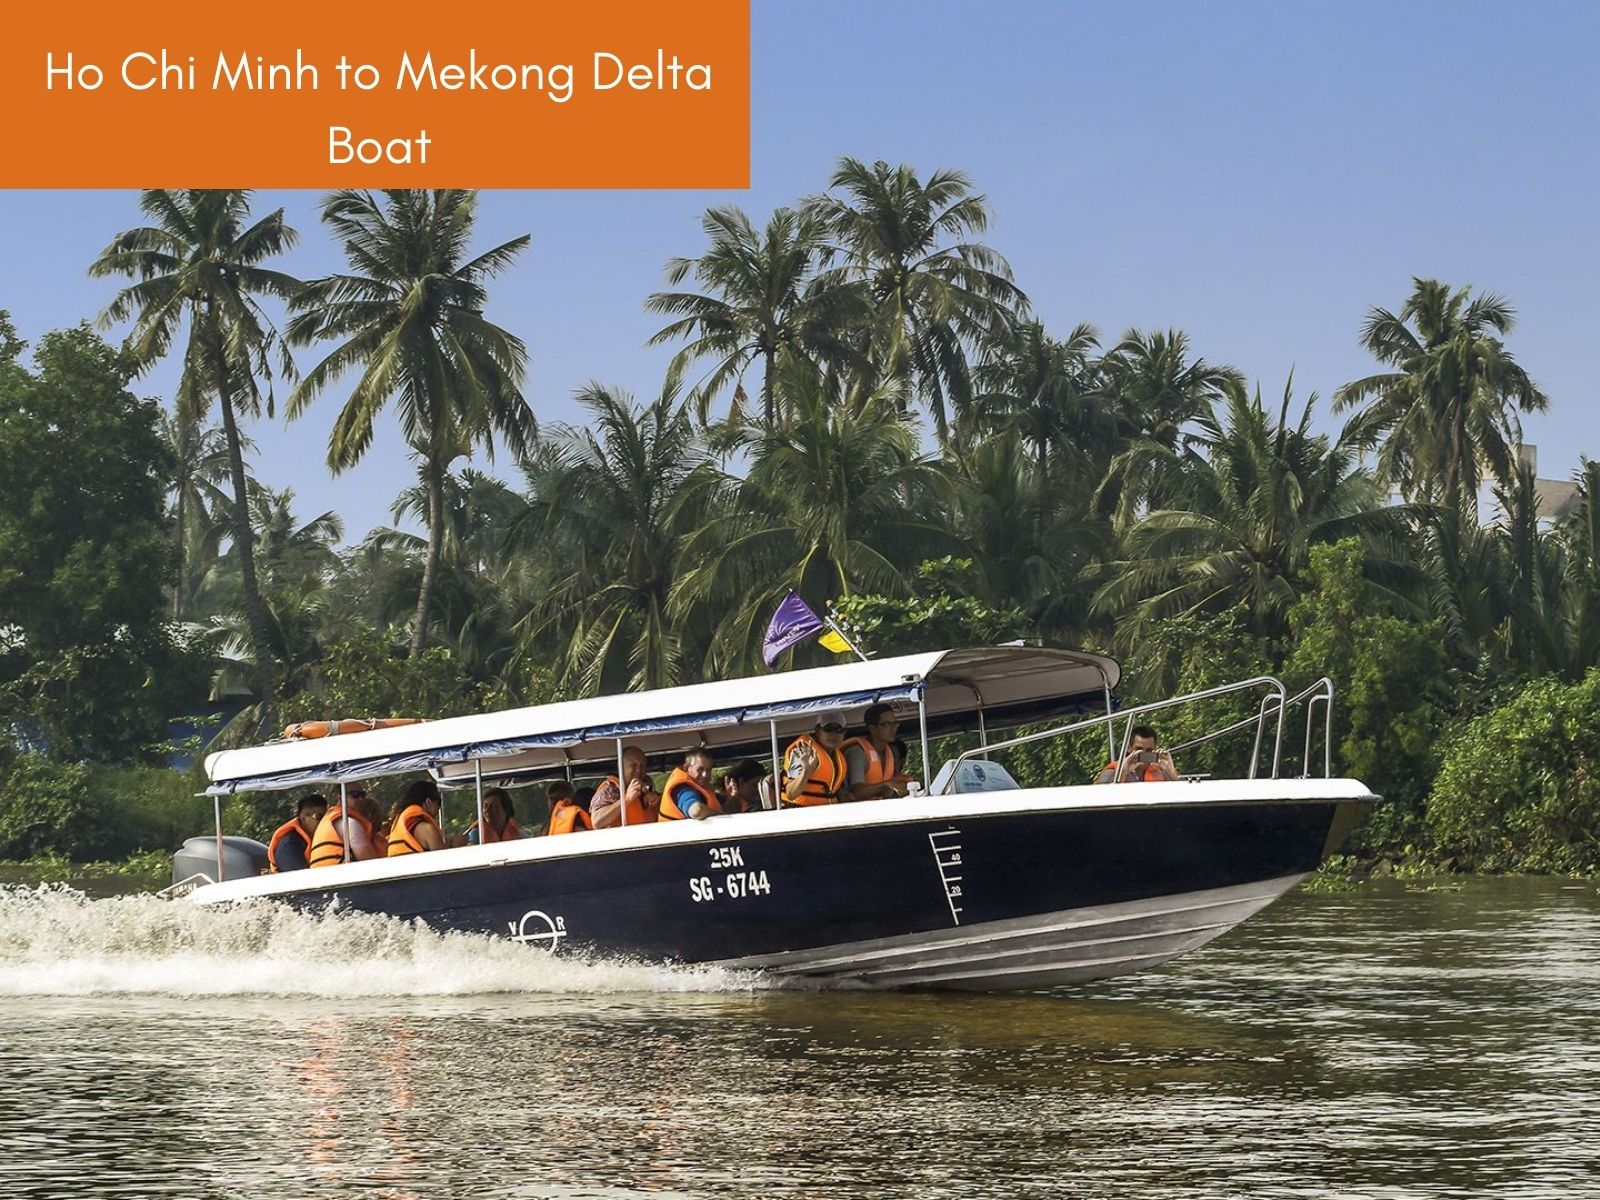 Ho Chi Minh to Mekong Delta Boat tour